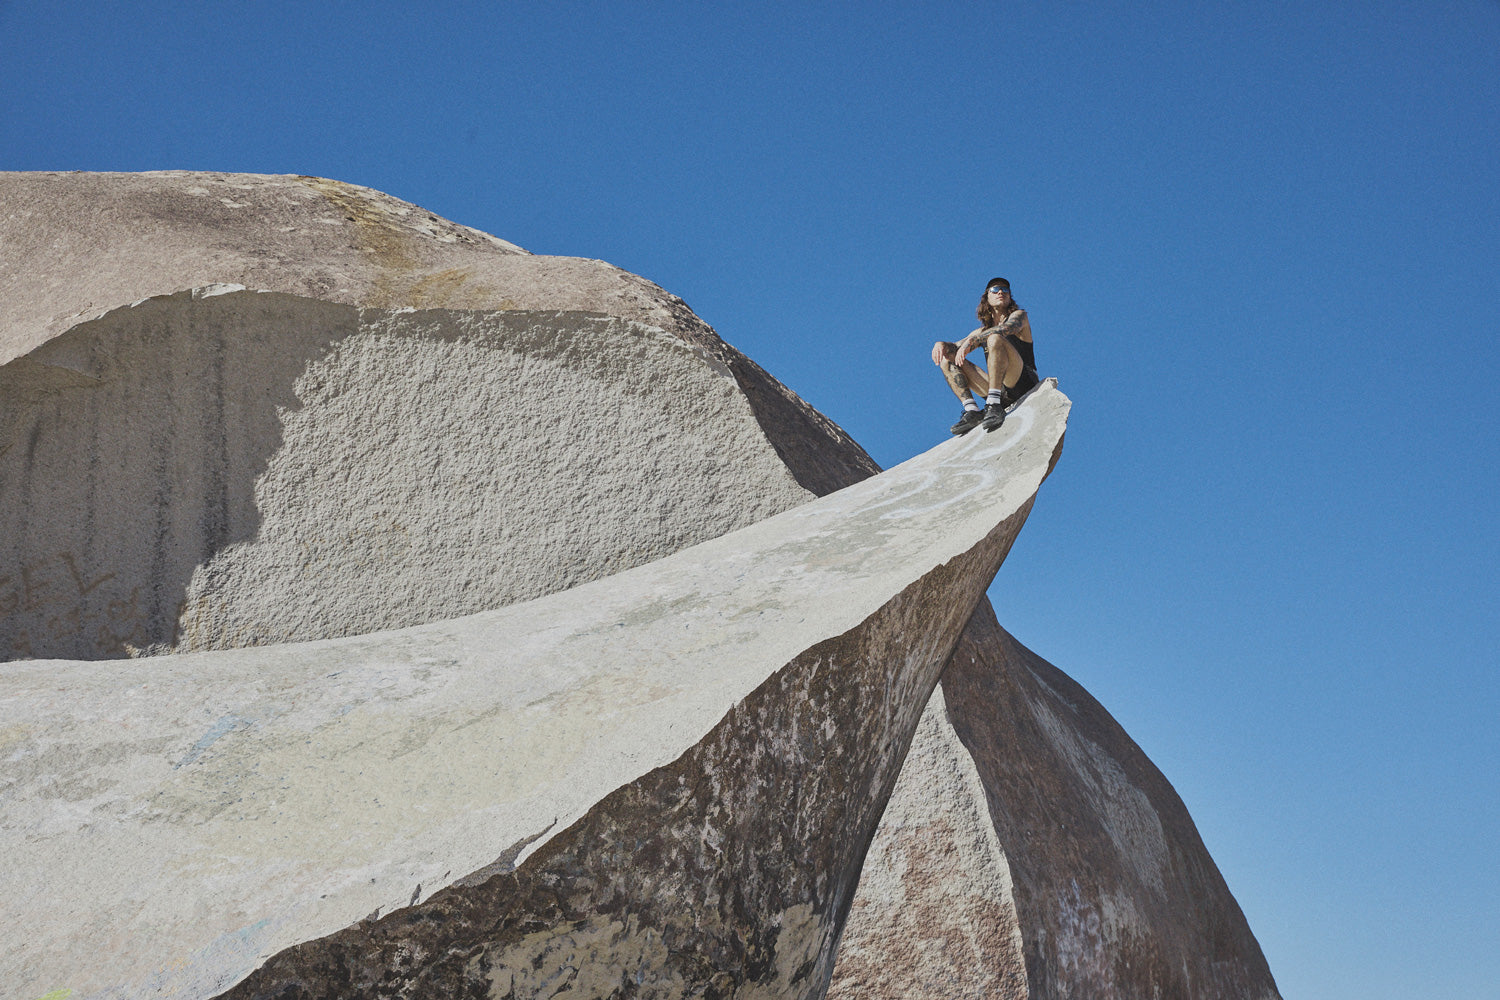 Max Jolliffe on Giant Rock